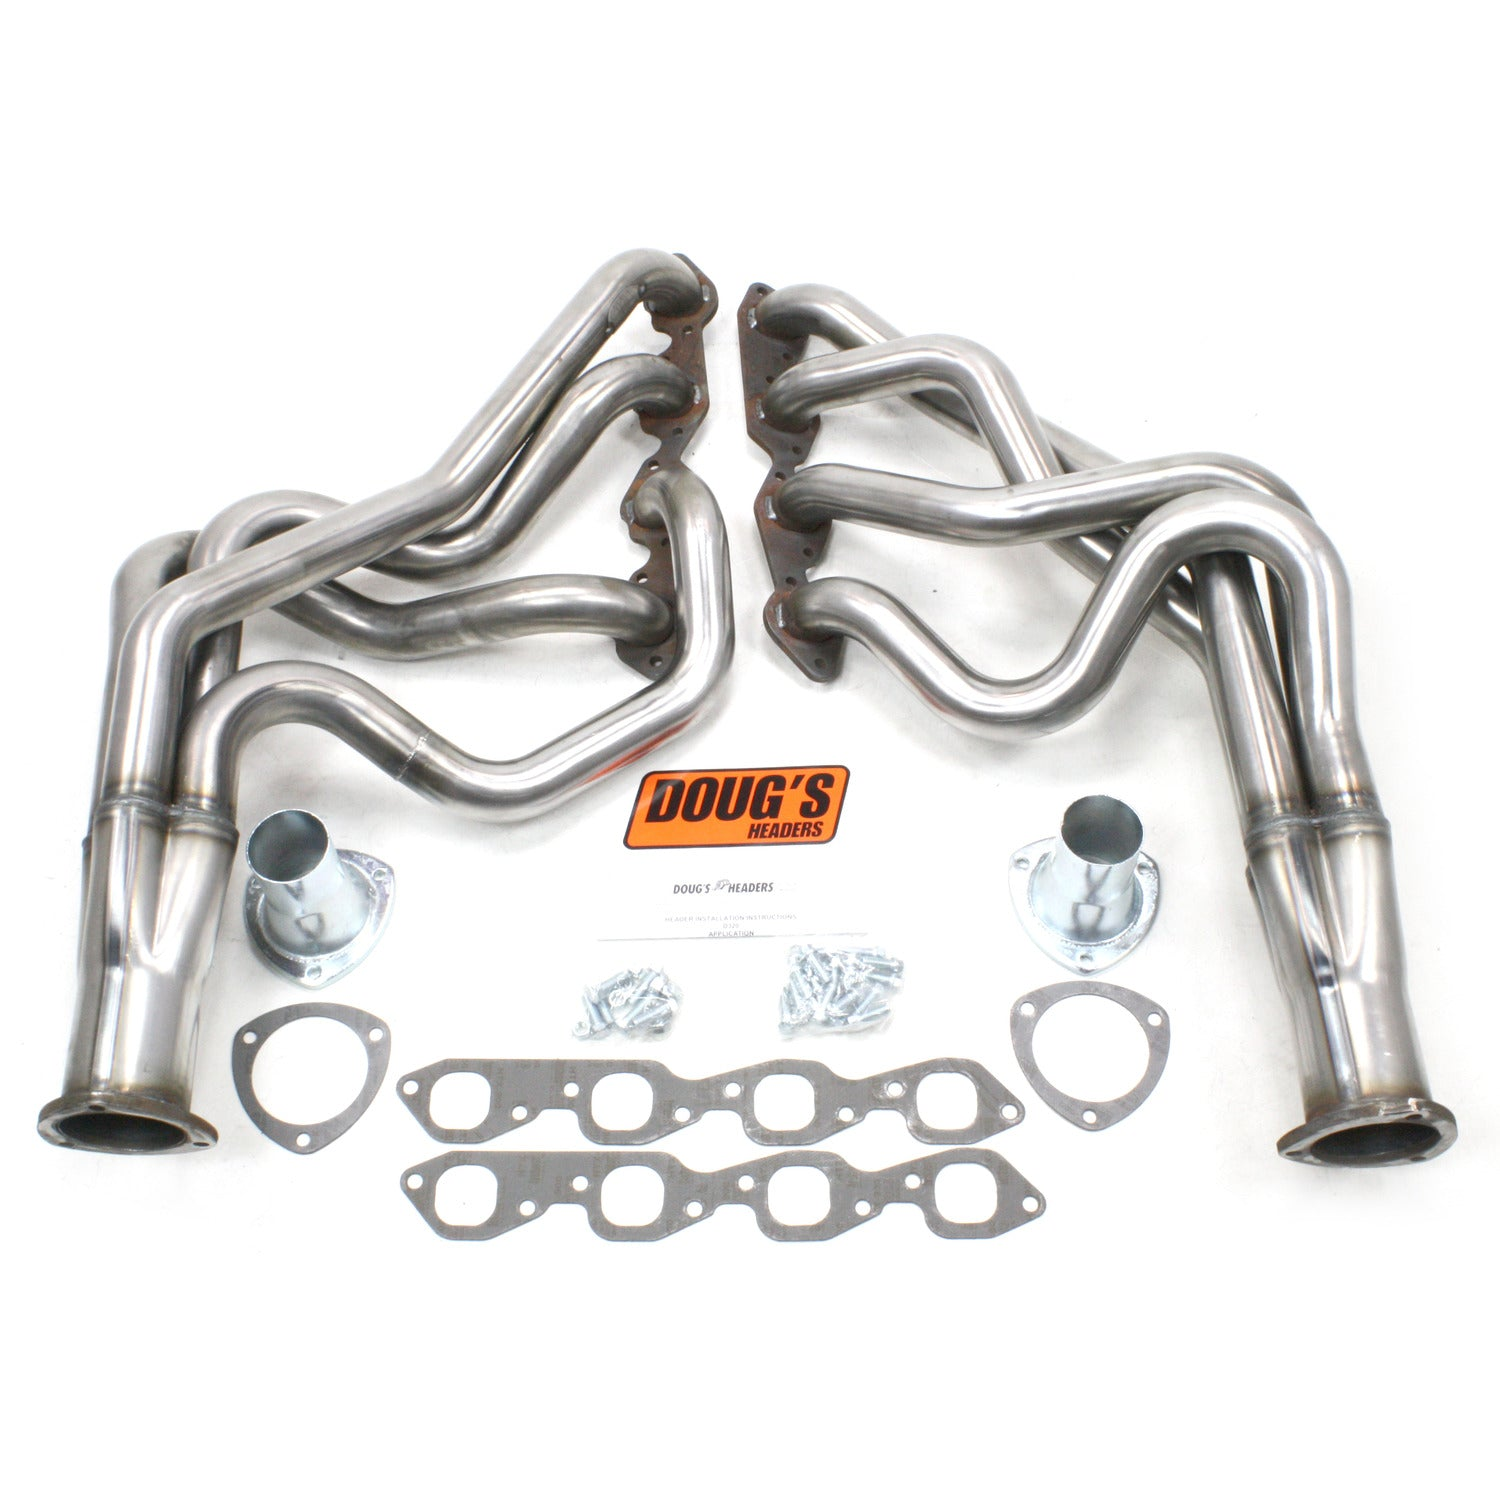 "Doug's Headers D320-R 2"" 4-Tube Full Length Header Chevrolet Camaro Big Block Chevrolet 67-69 Raw Steel"